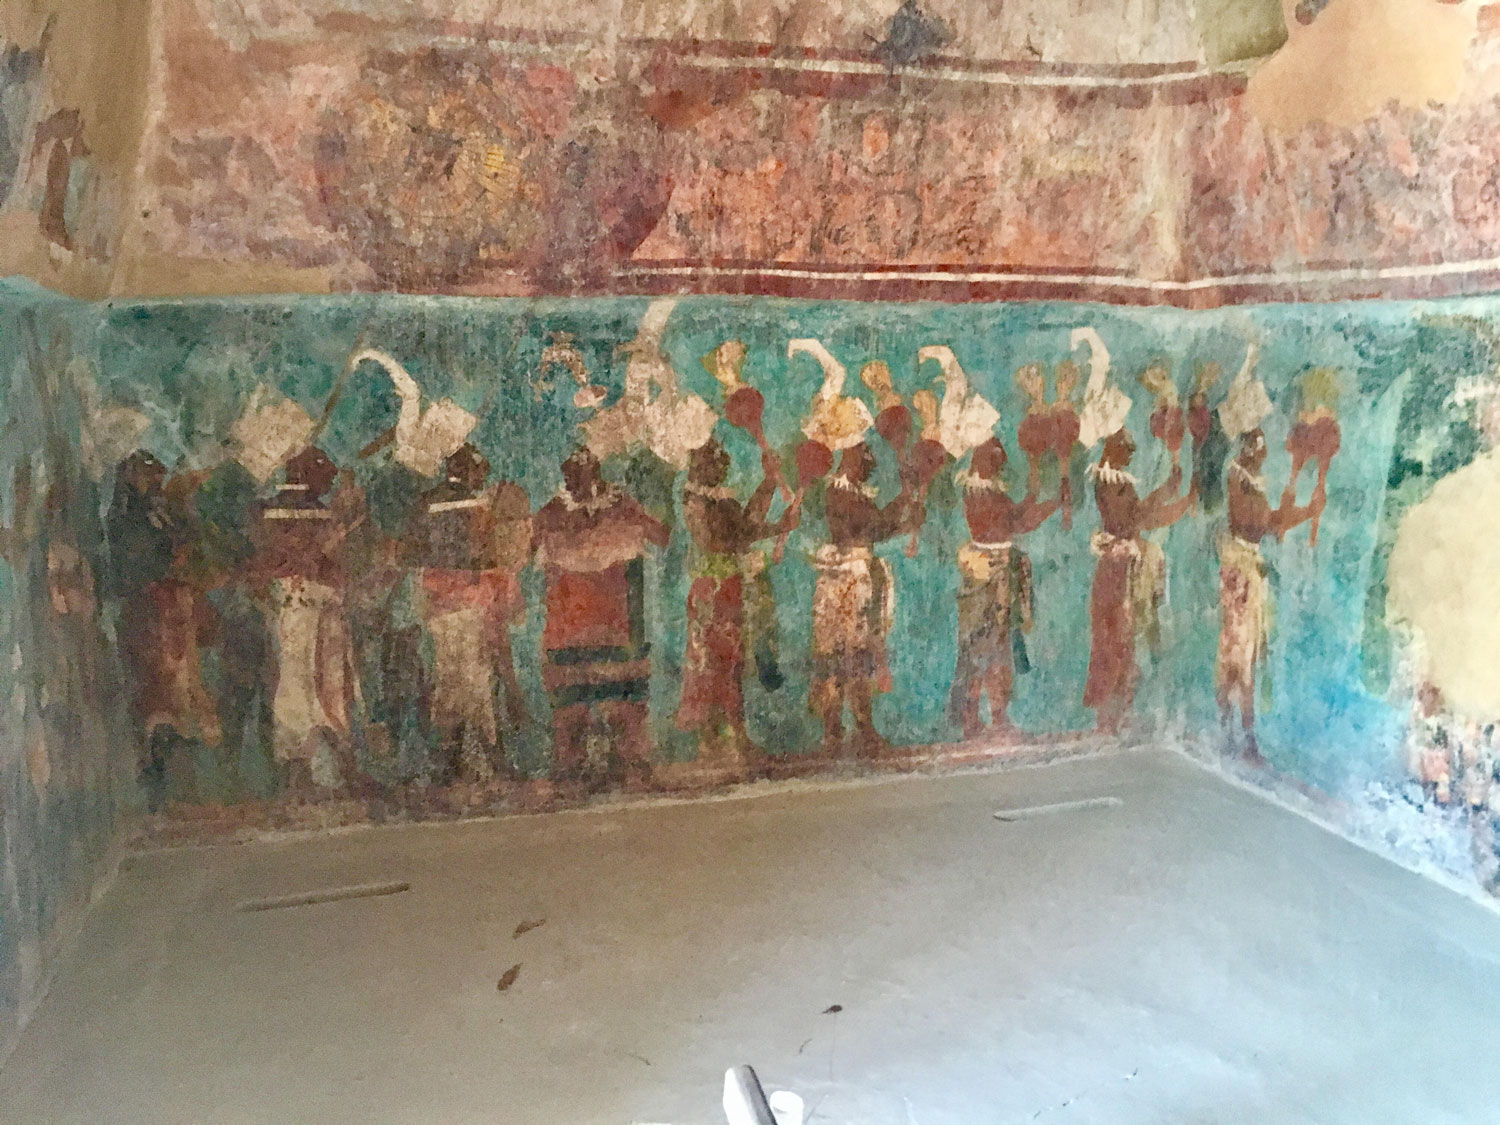 Musicians from Bonampak murals, wearing skirts and headdresses, playing gourd rattles, wooden drums, and trumpets.